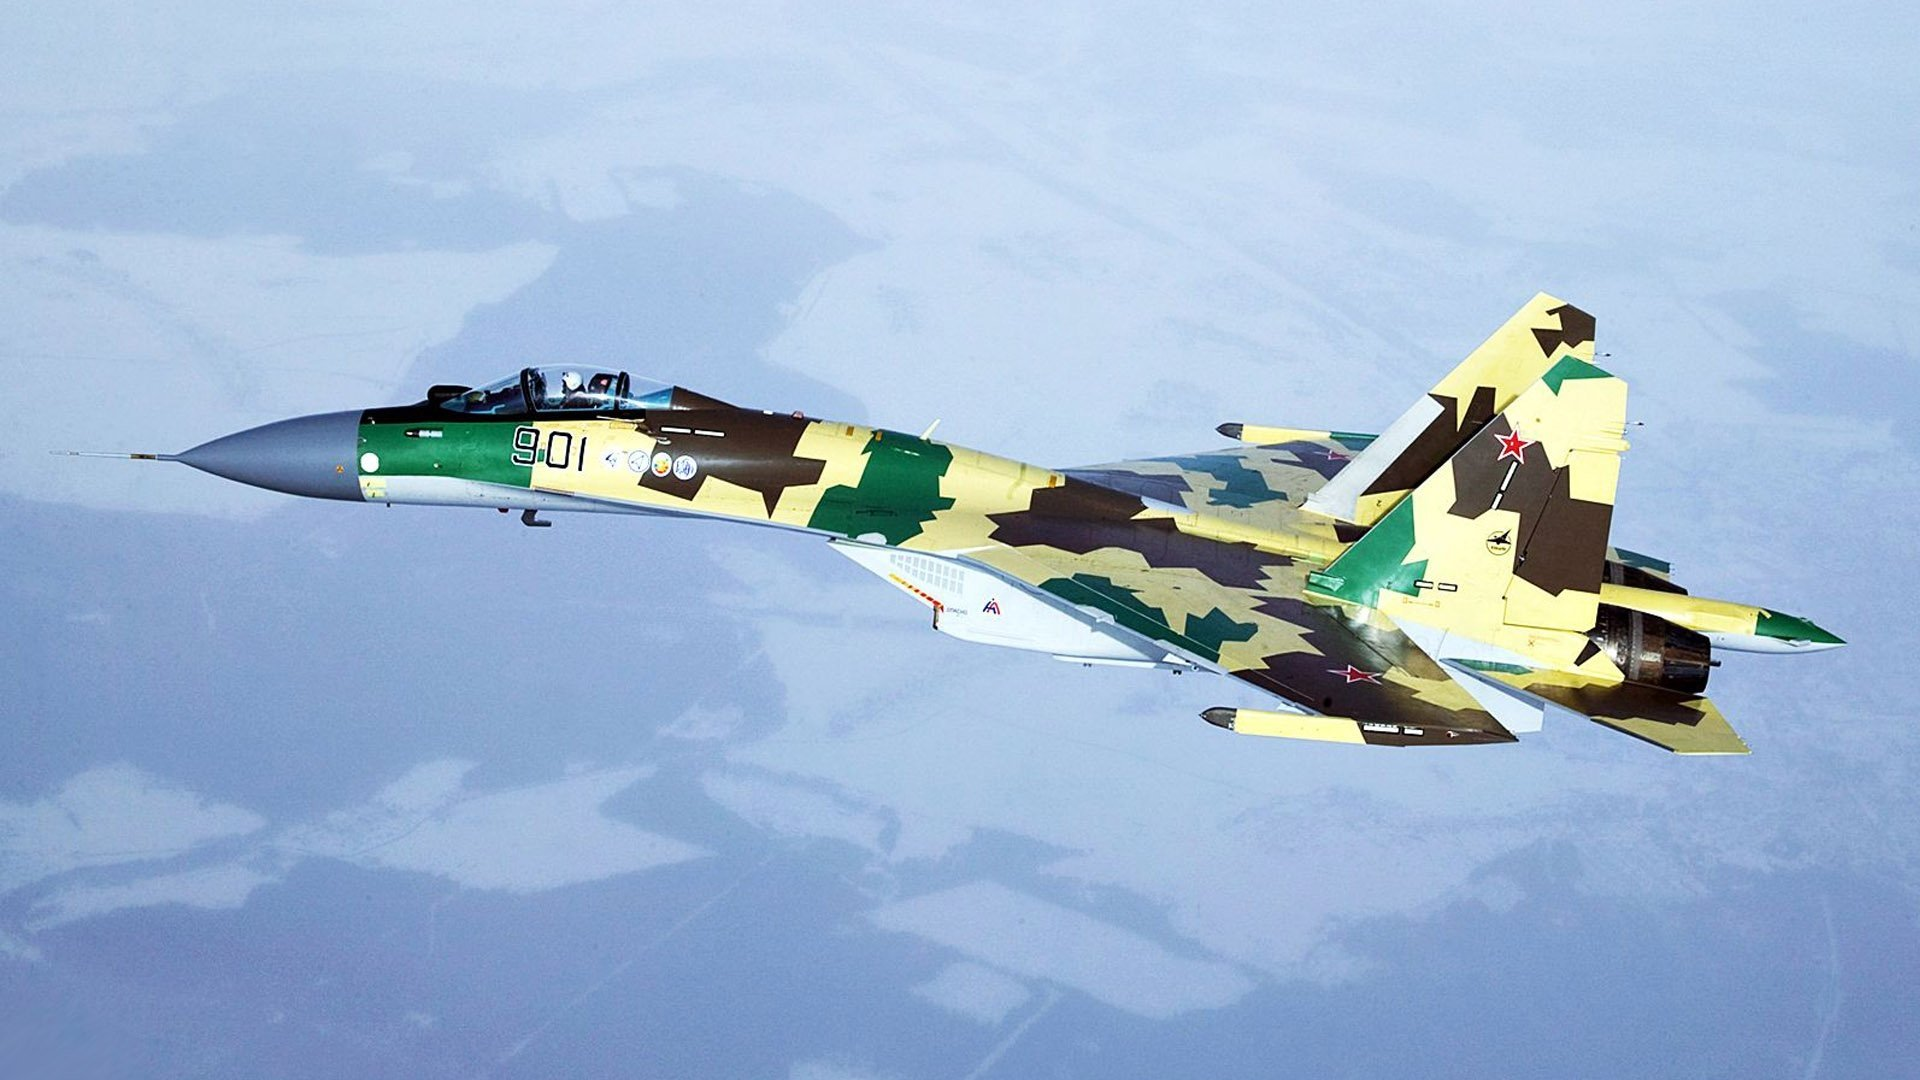 Military - Sukhoi Su-35  Military Aircraft Air Force Warplane Wallpaper